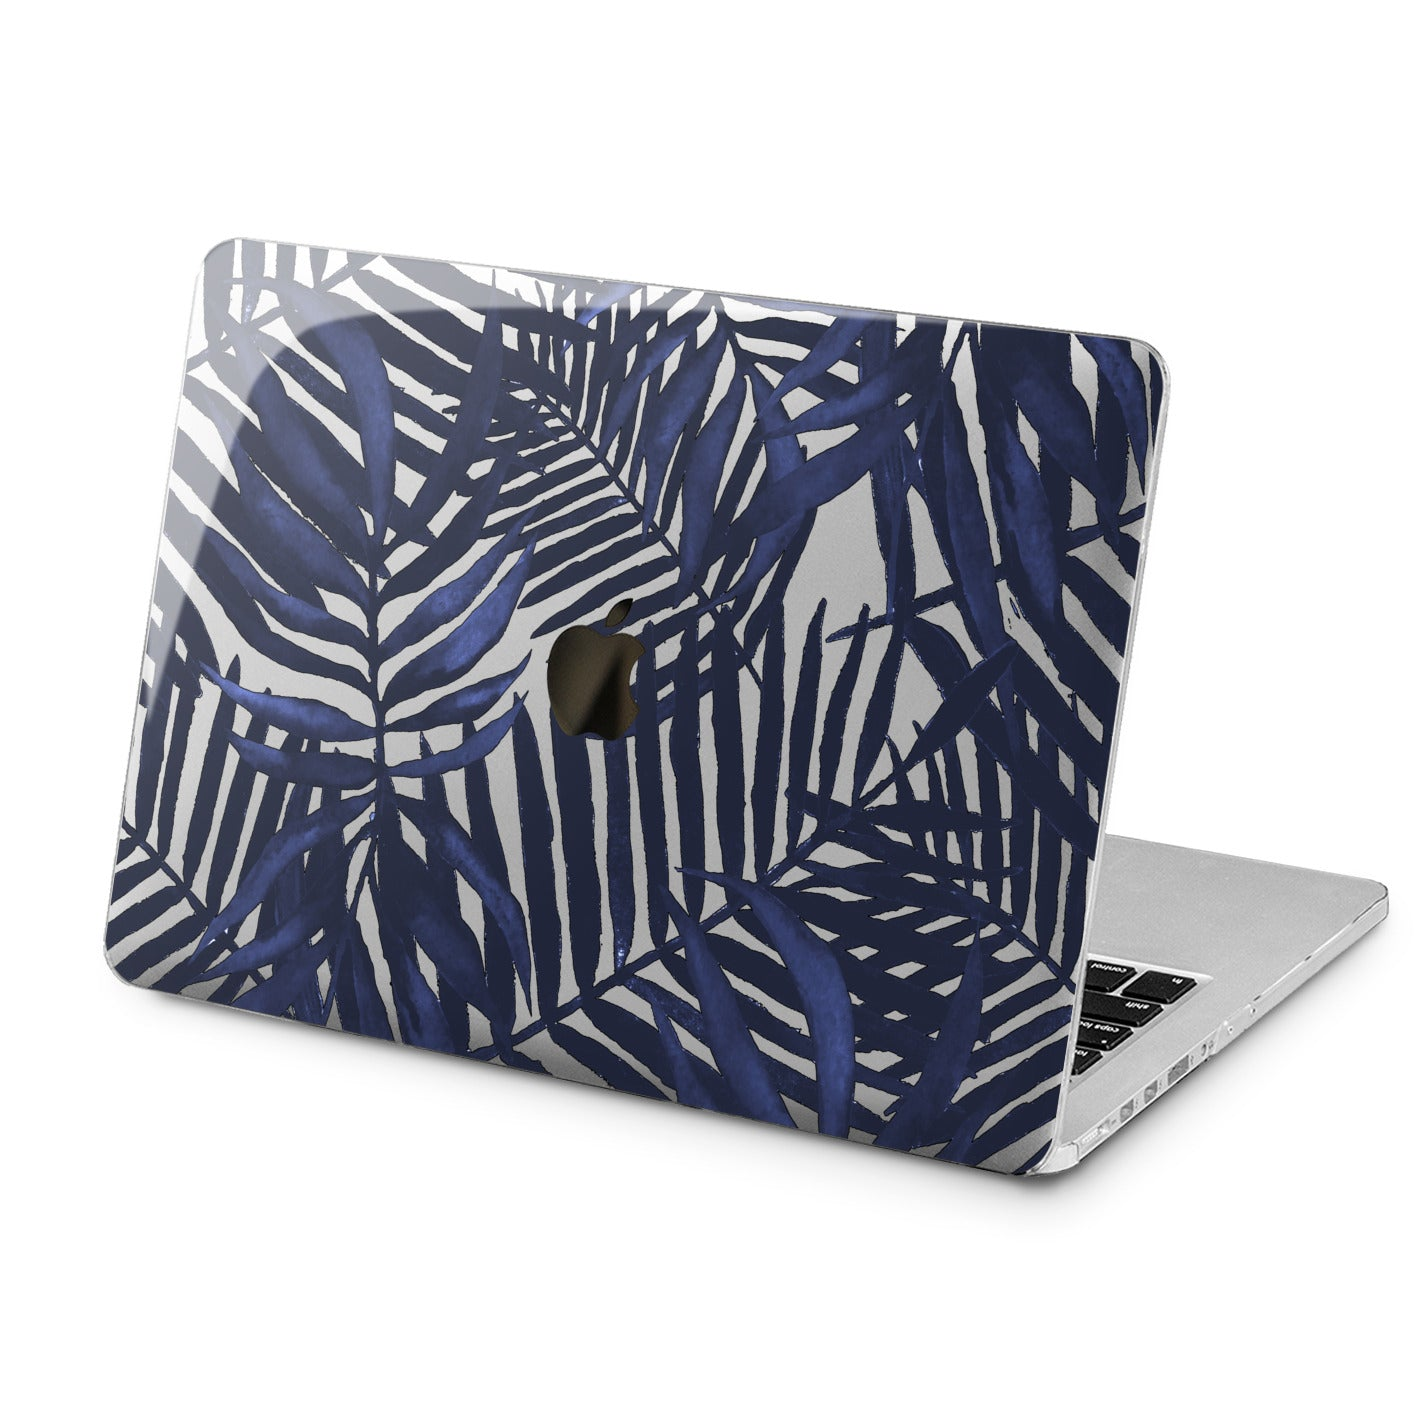 Lex Altern Palm Leaves Design Case for your Laptop Apple Macbook.